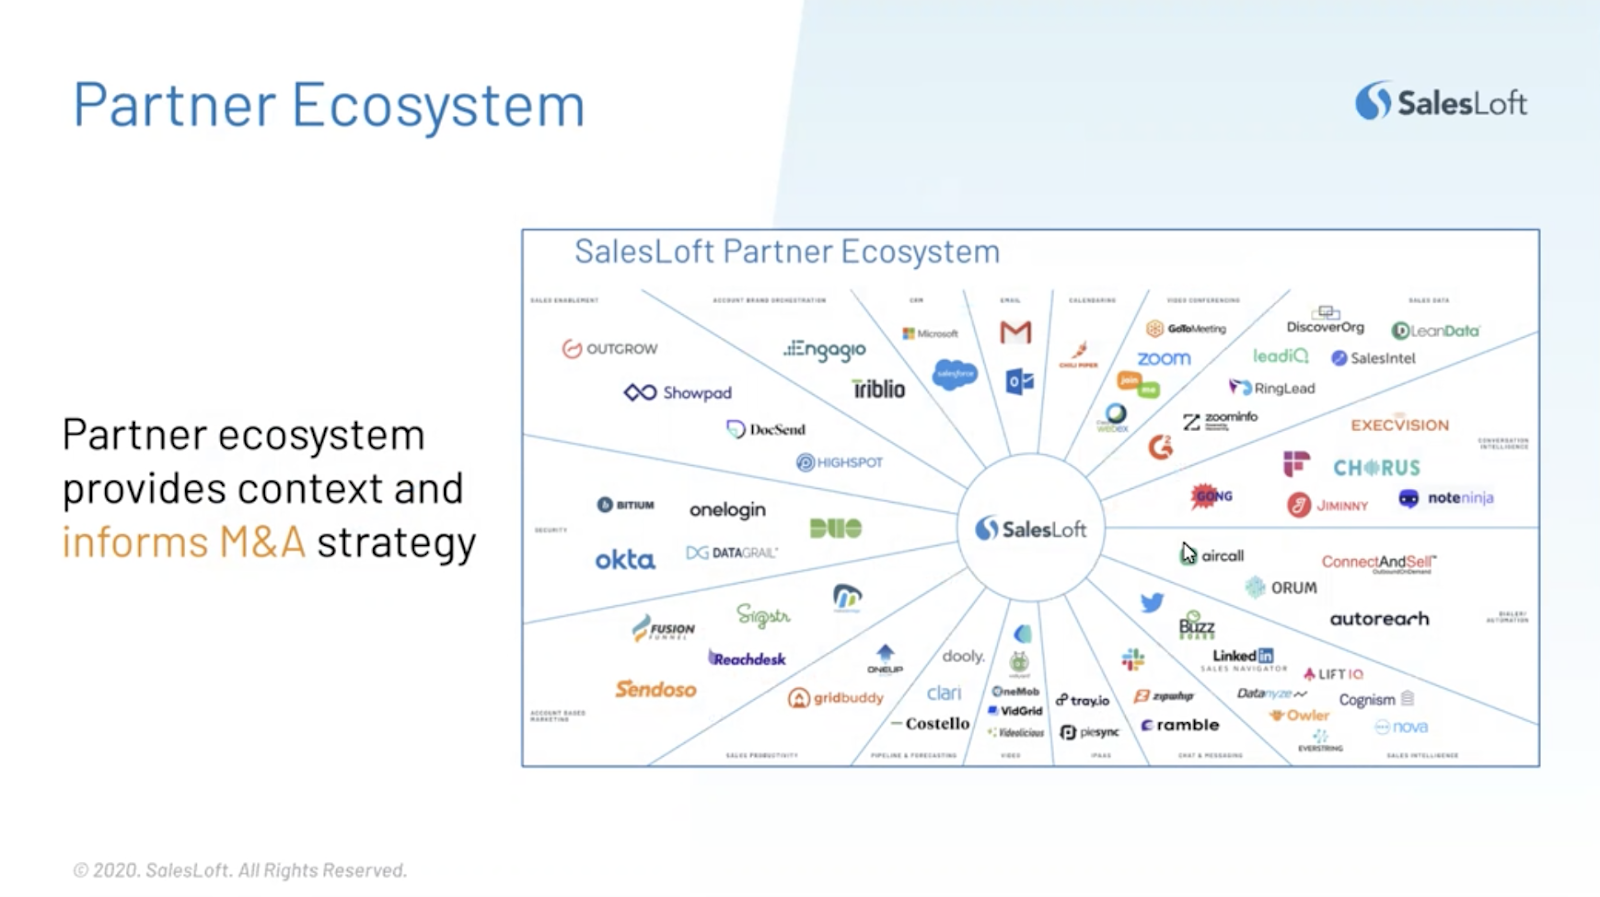 Partner ecosystem provided context and informs M&A strategy.